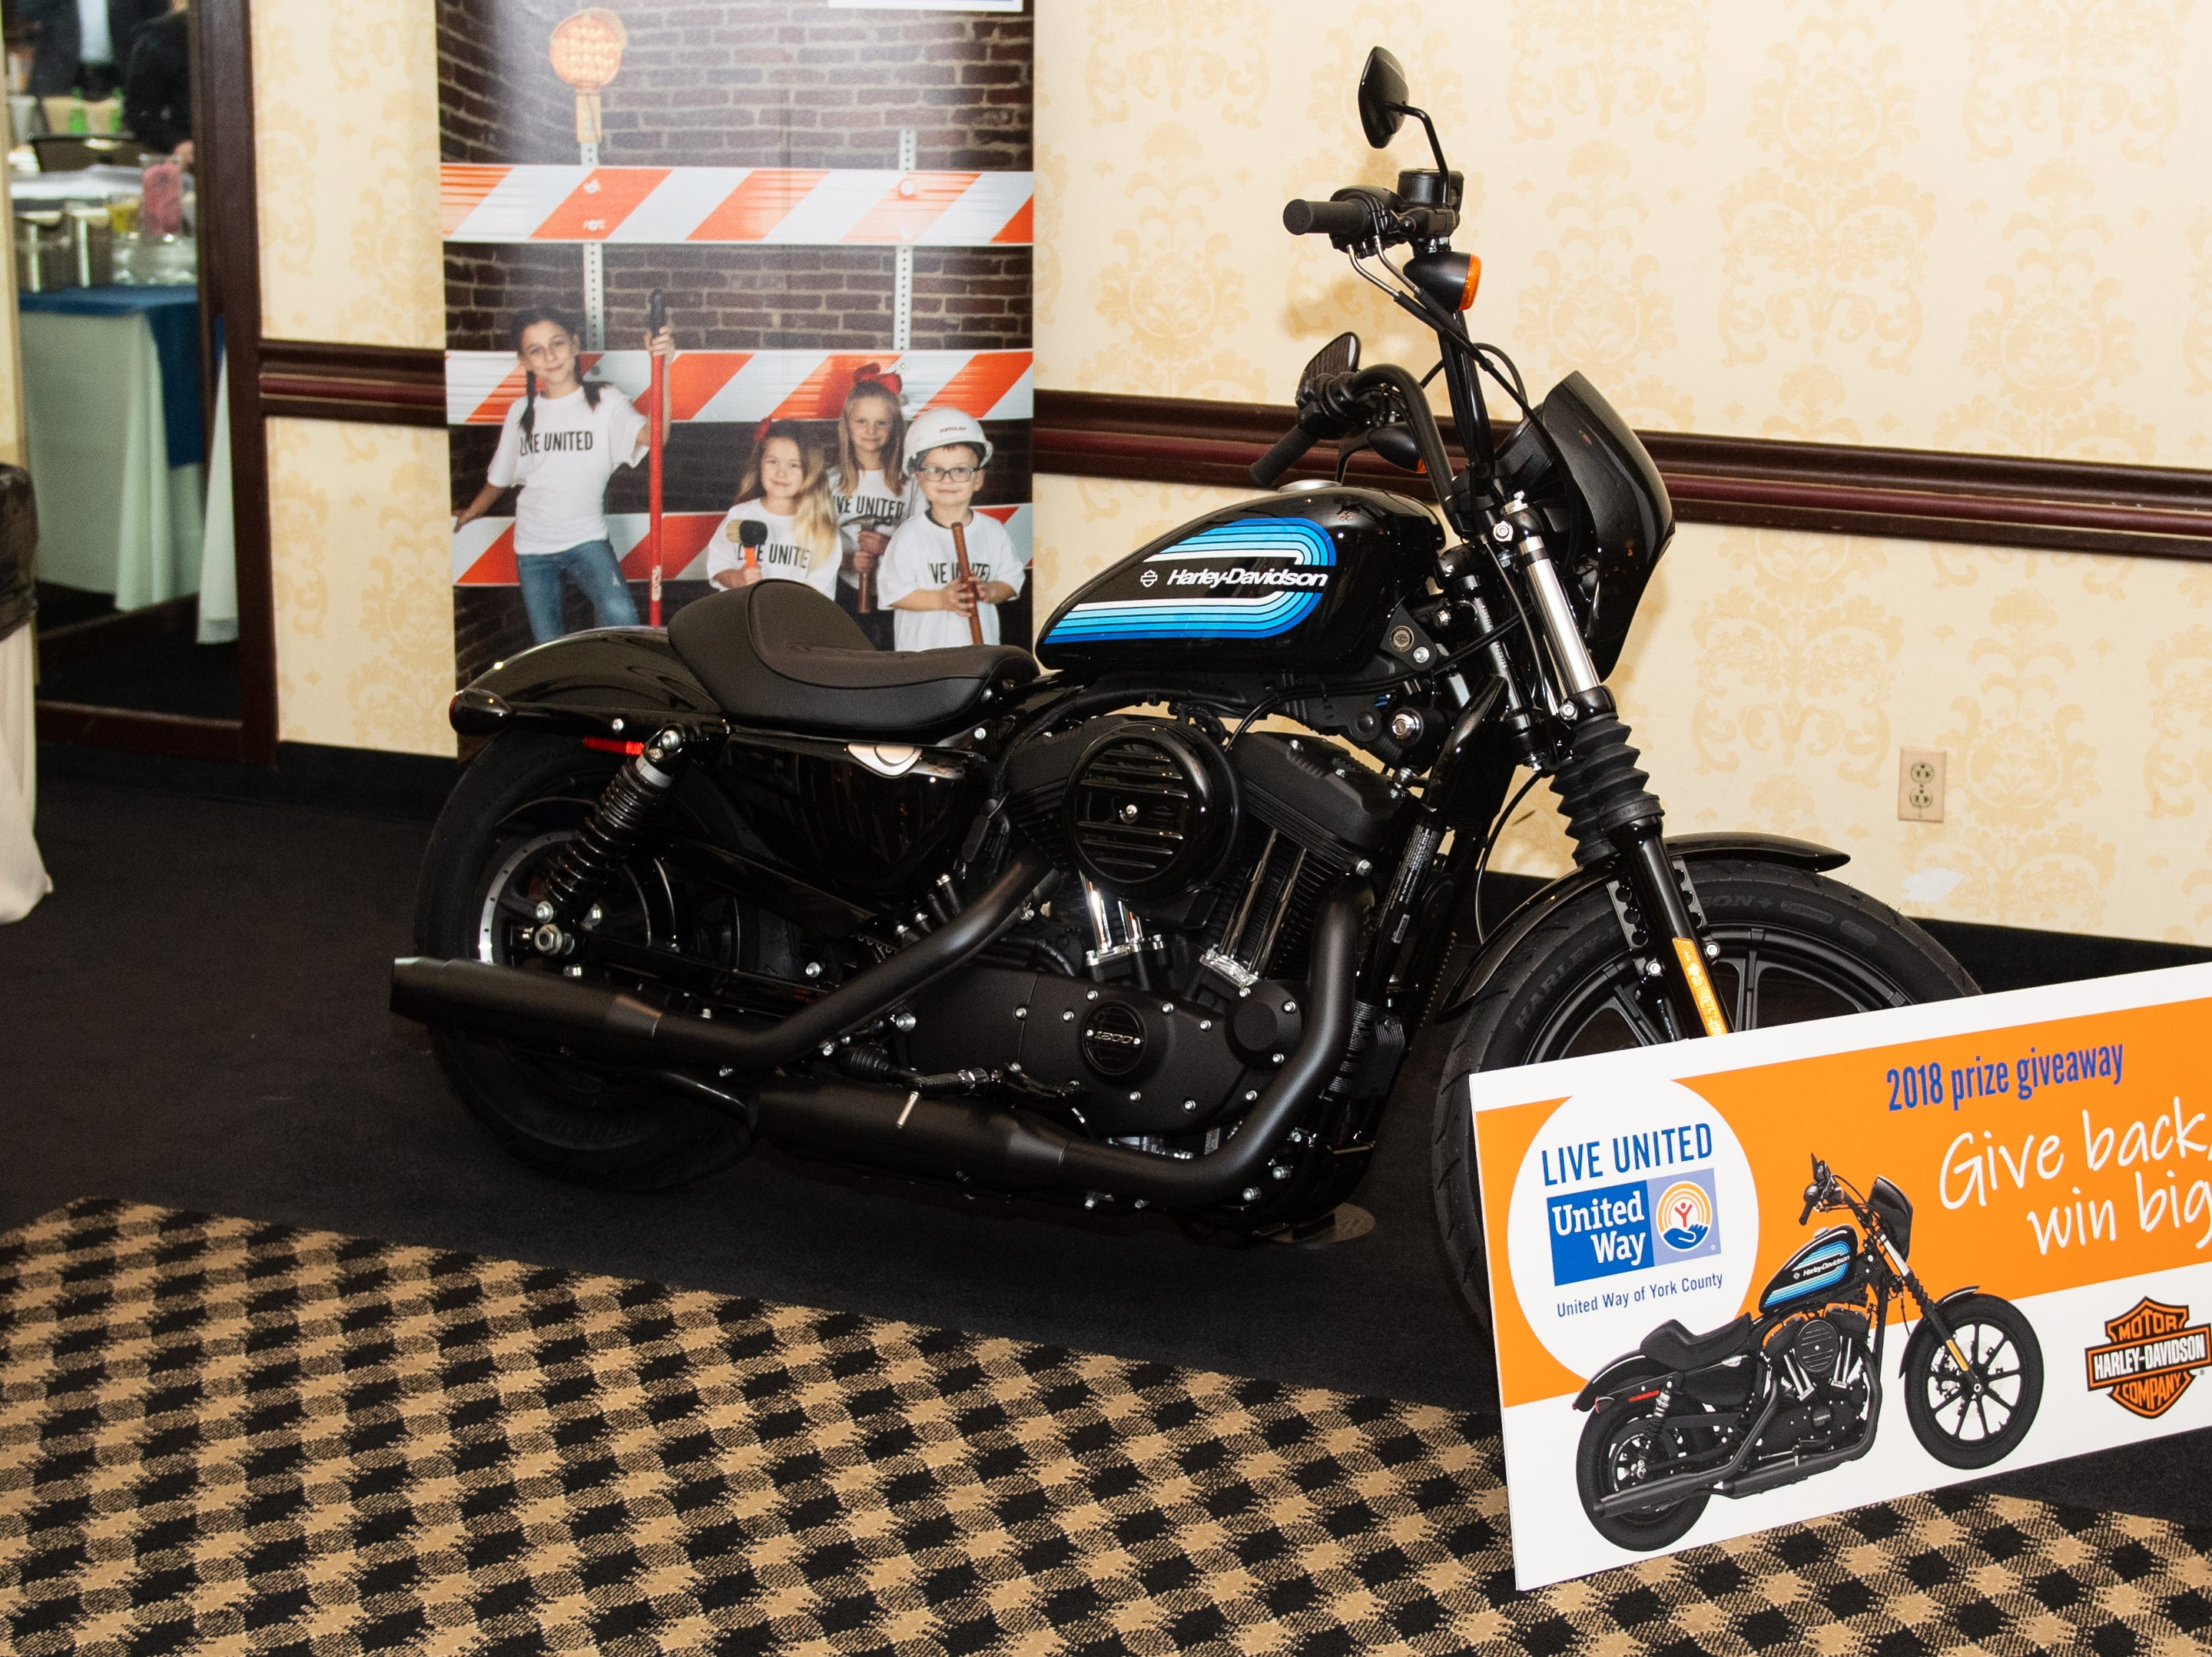 The Giveaways were saved for the end of the night. The grand prize is a 2019 Harley-Davidson Iron 1200 Motorcycle, donated by Harley-Davidson Motor Company, February 7, 2019.